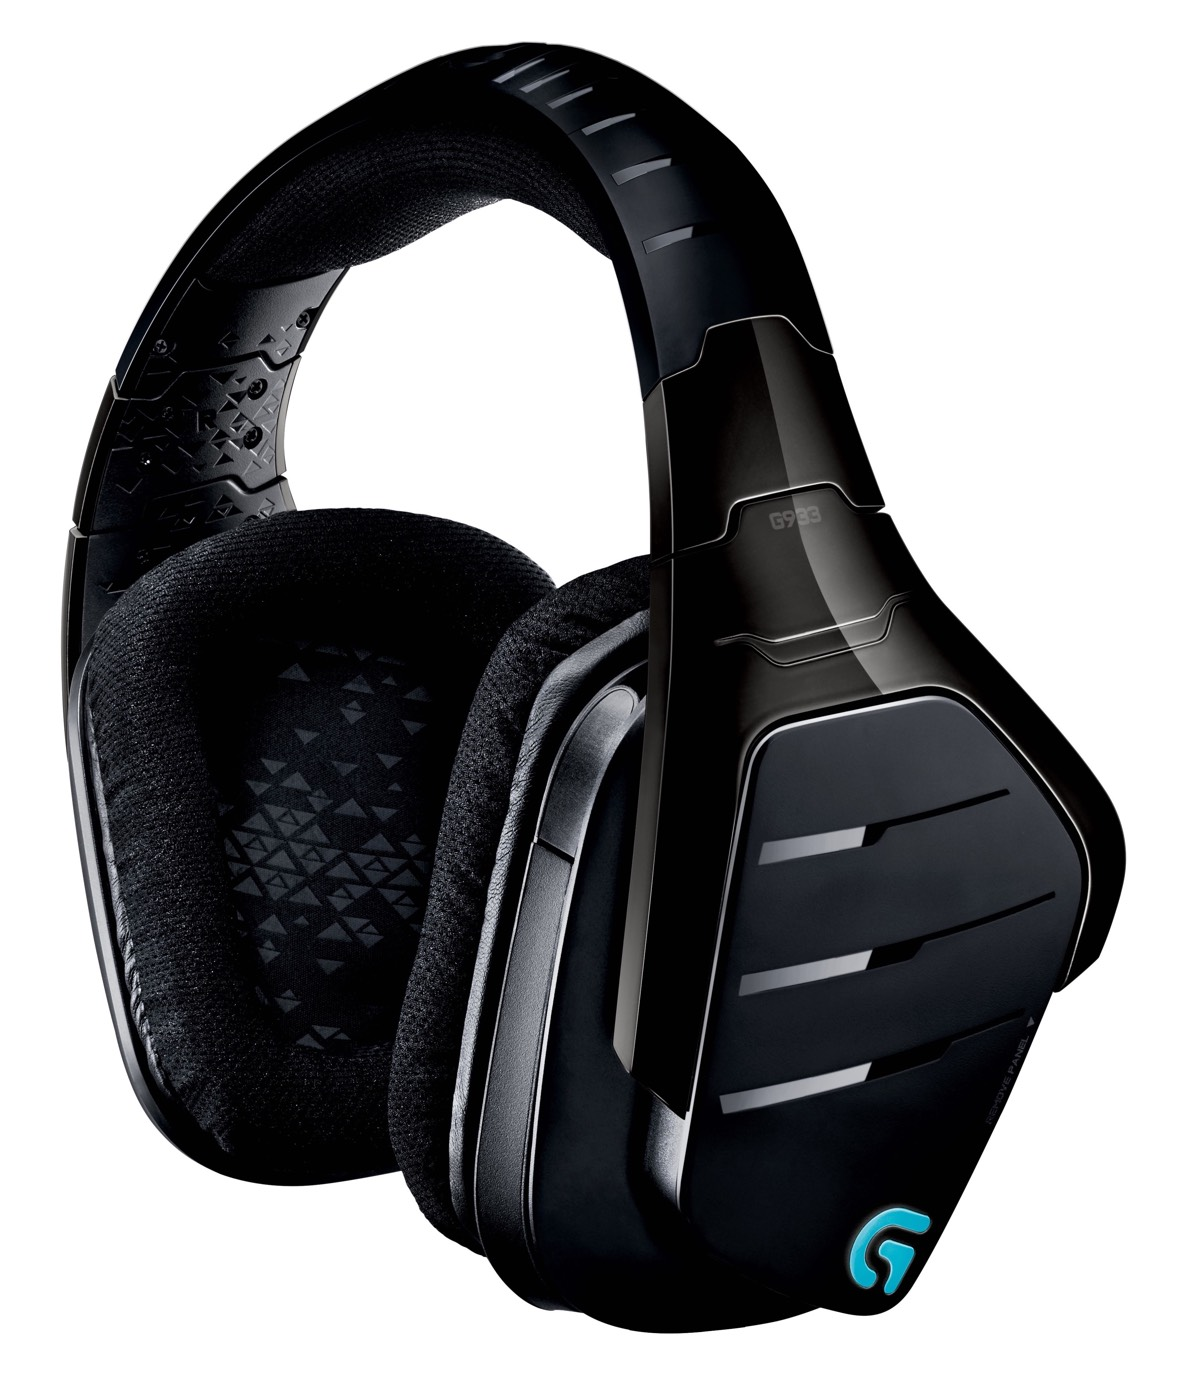 Logitech's G933 wireless surround sound headset takes